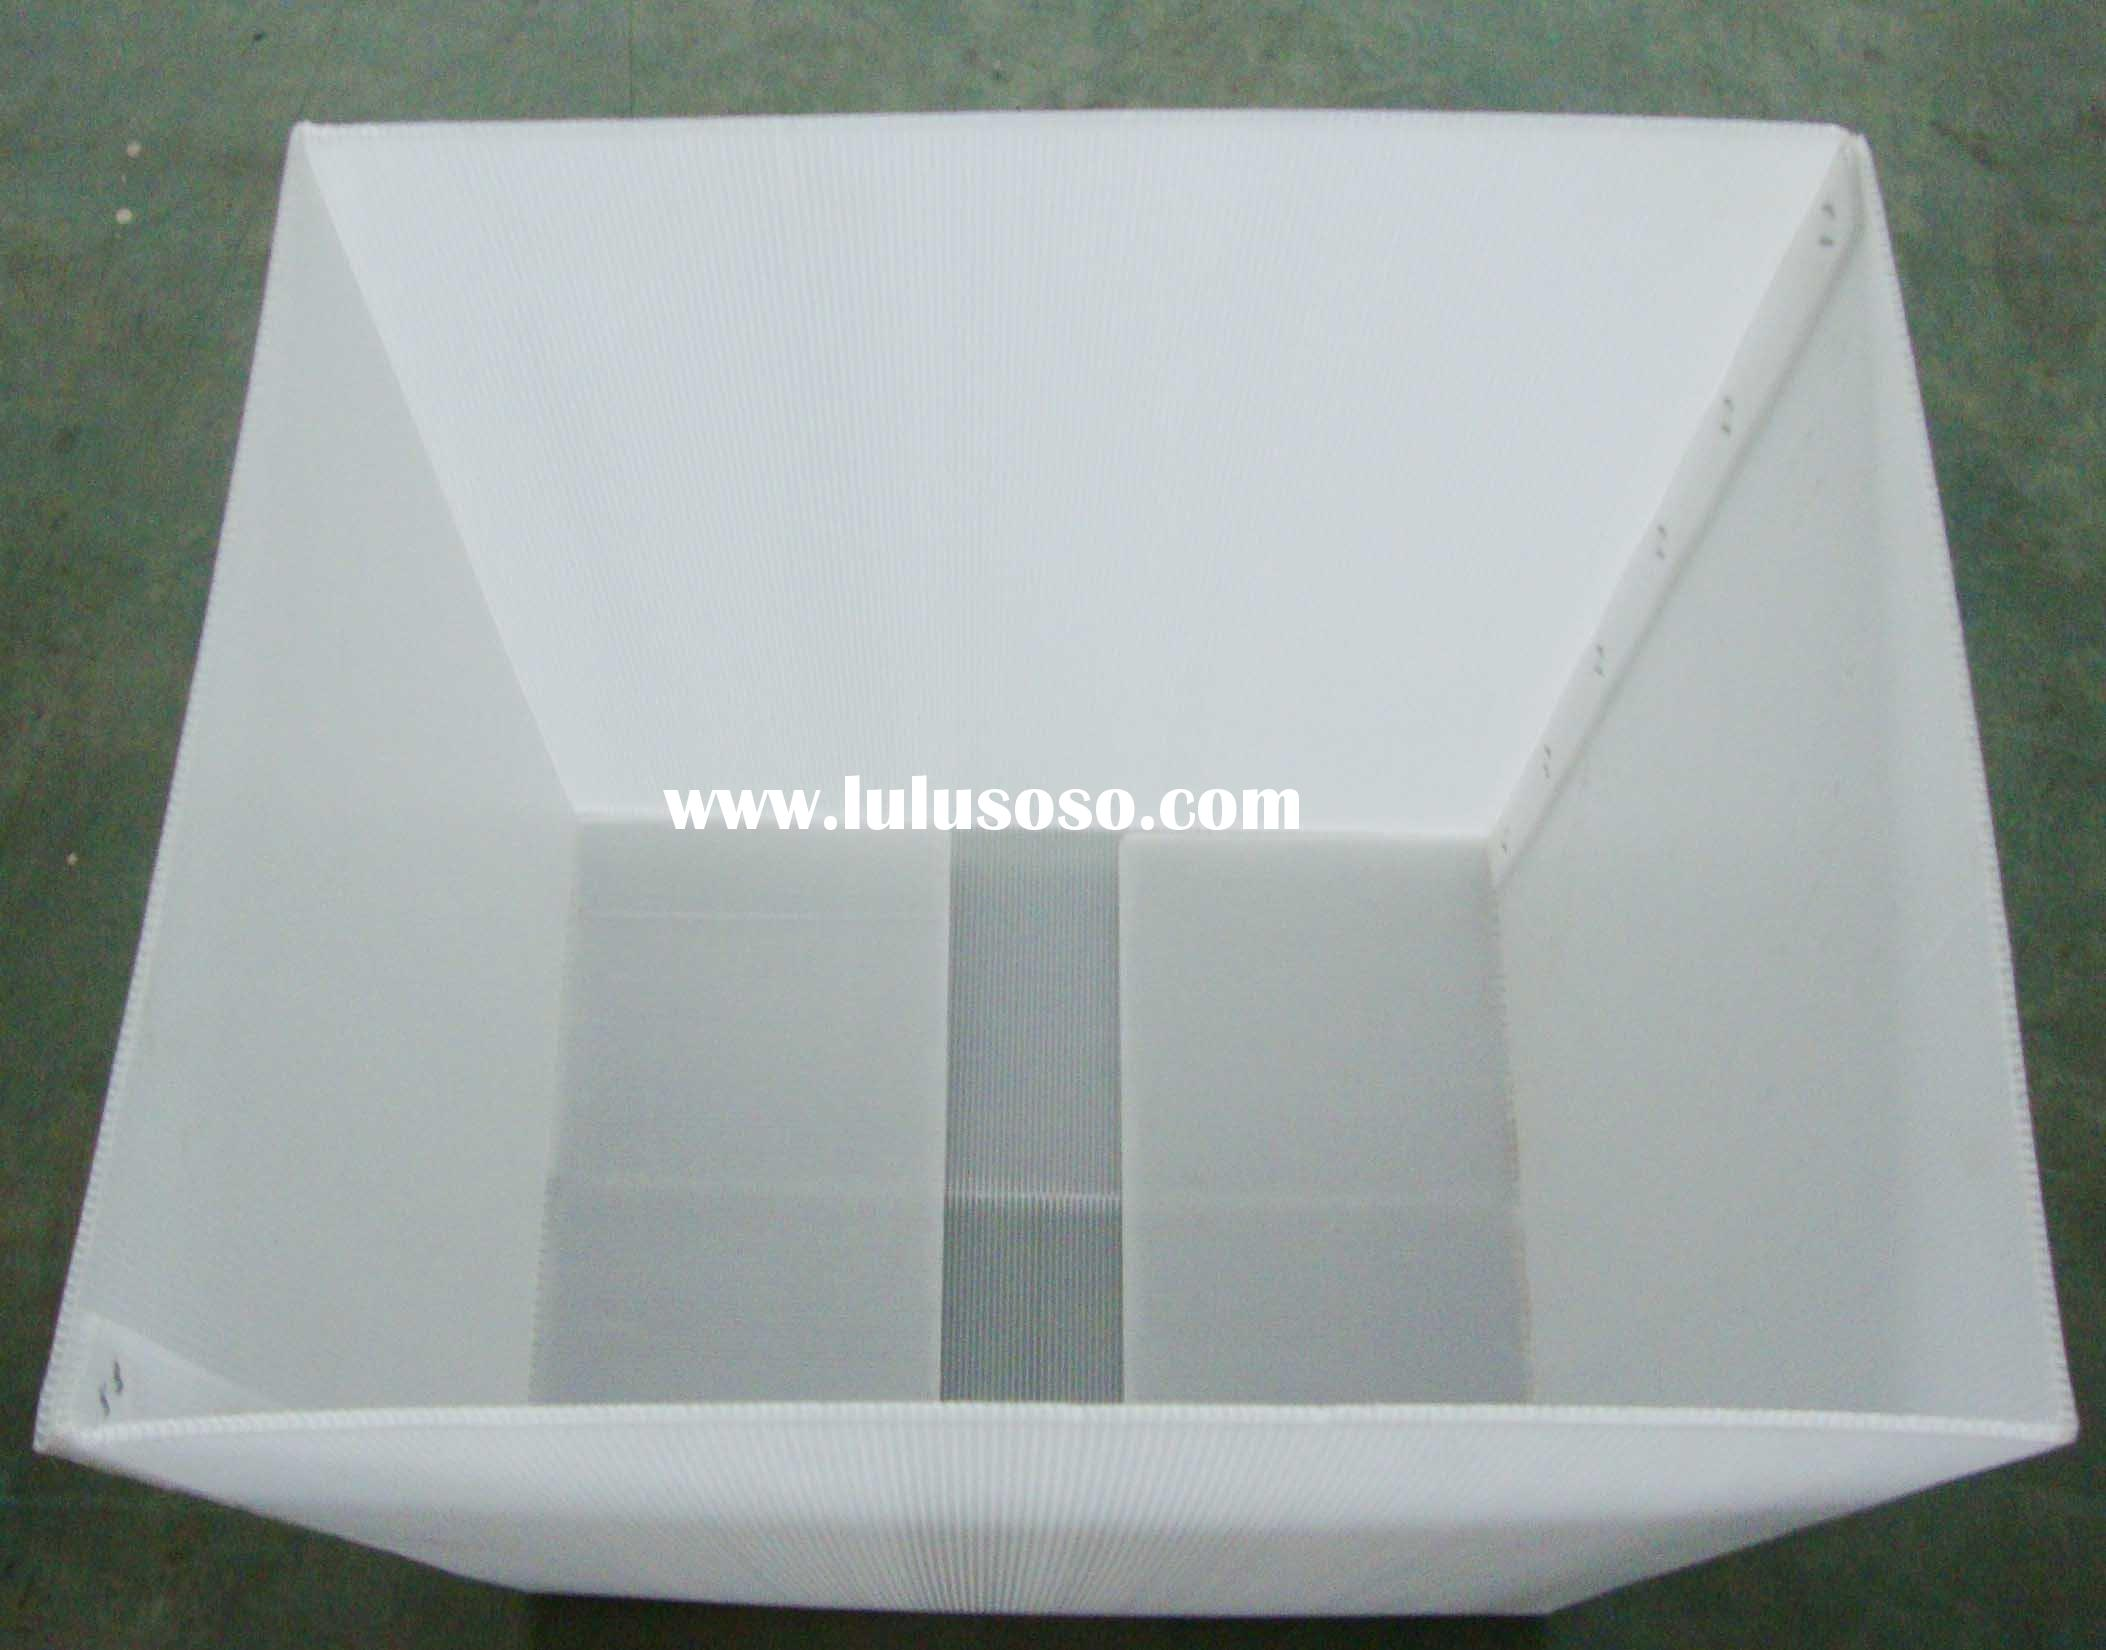 plastic water proof box without lid